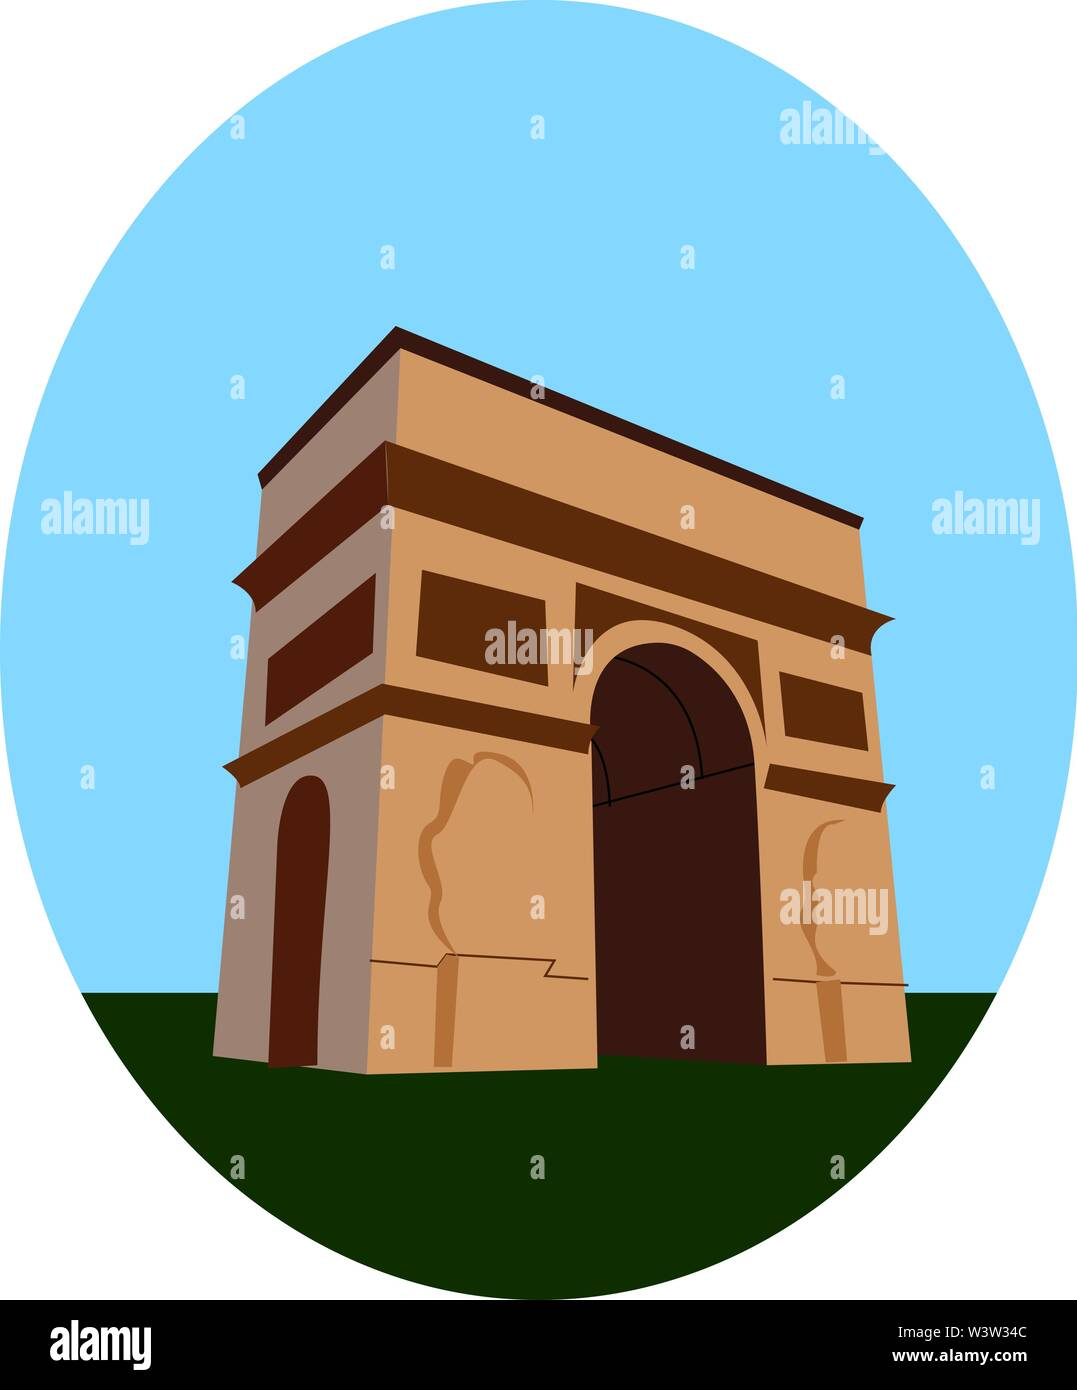 Arc de Triomphe, illustration, vector on white background. - Stock Image